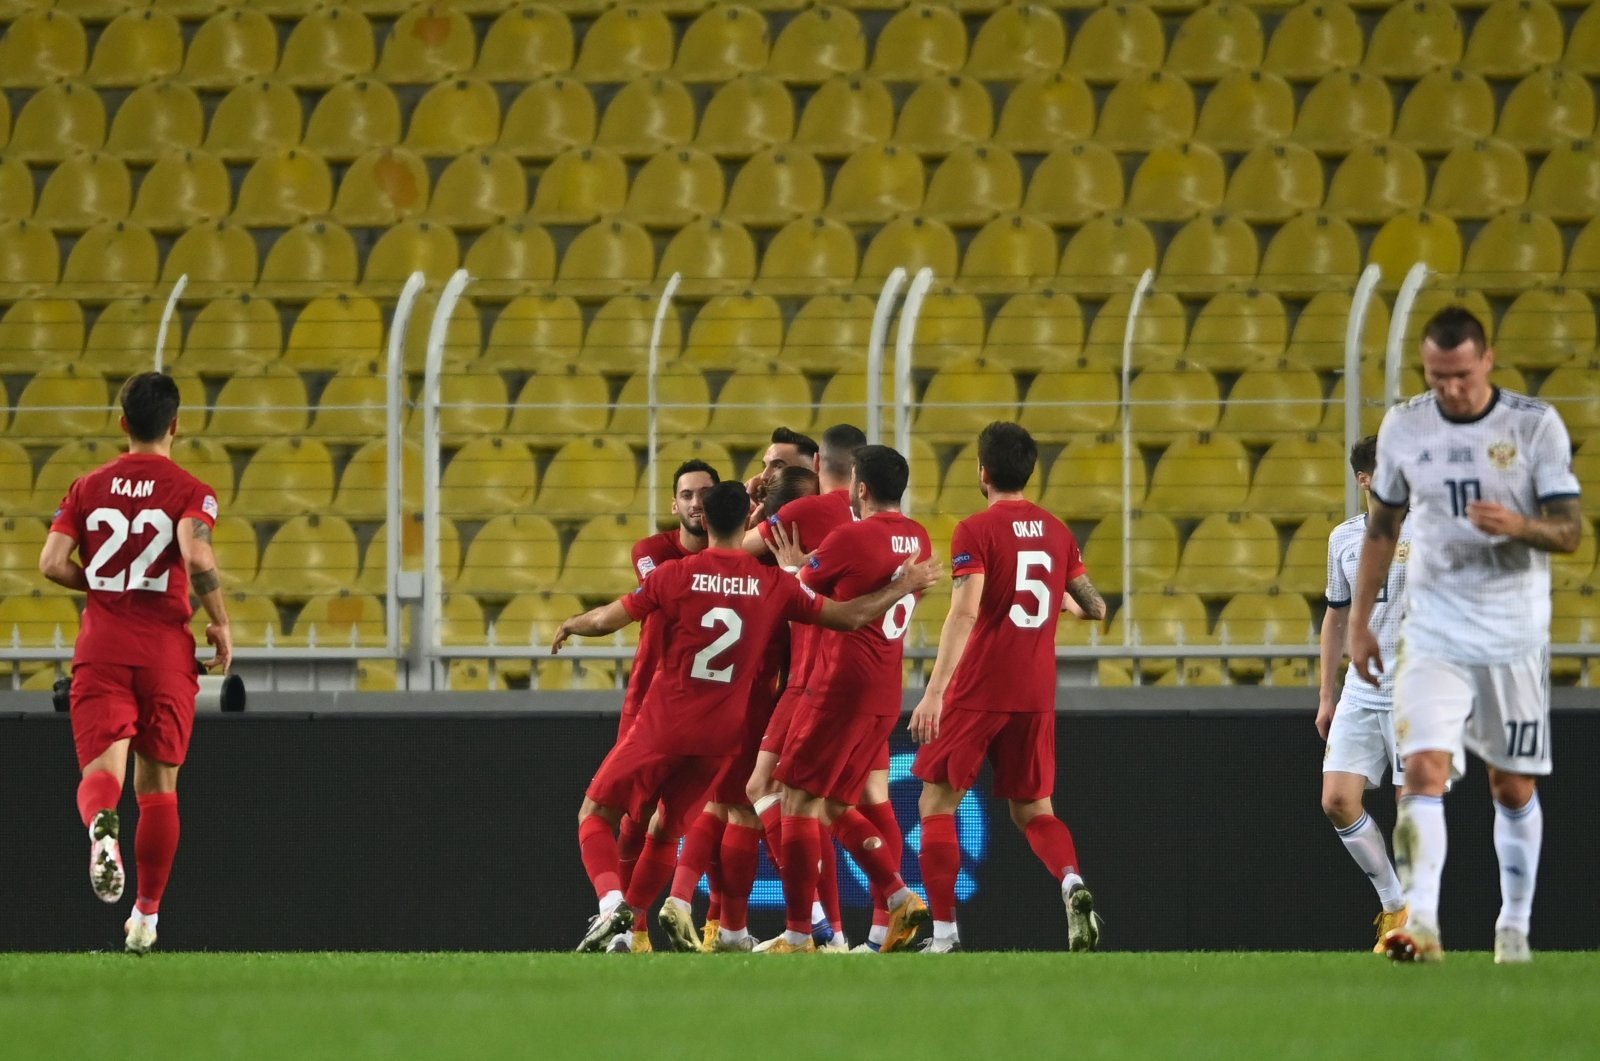 Turkey players celebrate a goal against Russia during a UEFA Nations League match in Istanbul, Turkey, Nov. 15, 2020. (AFP Photo)